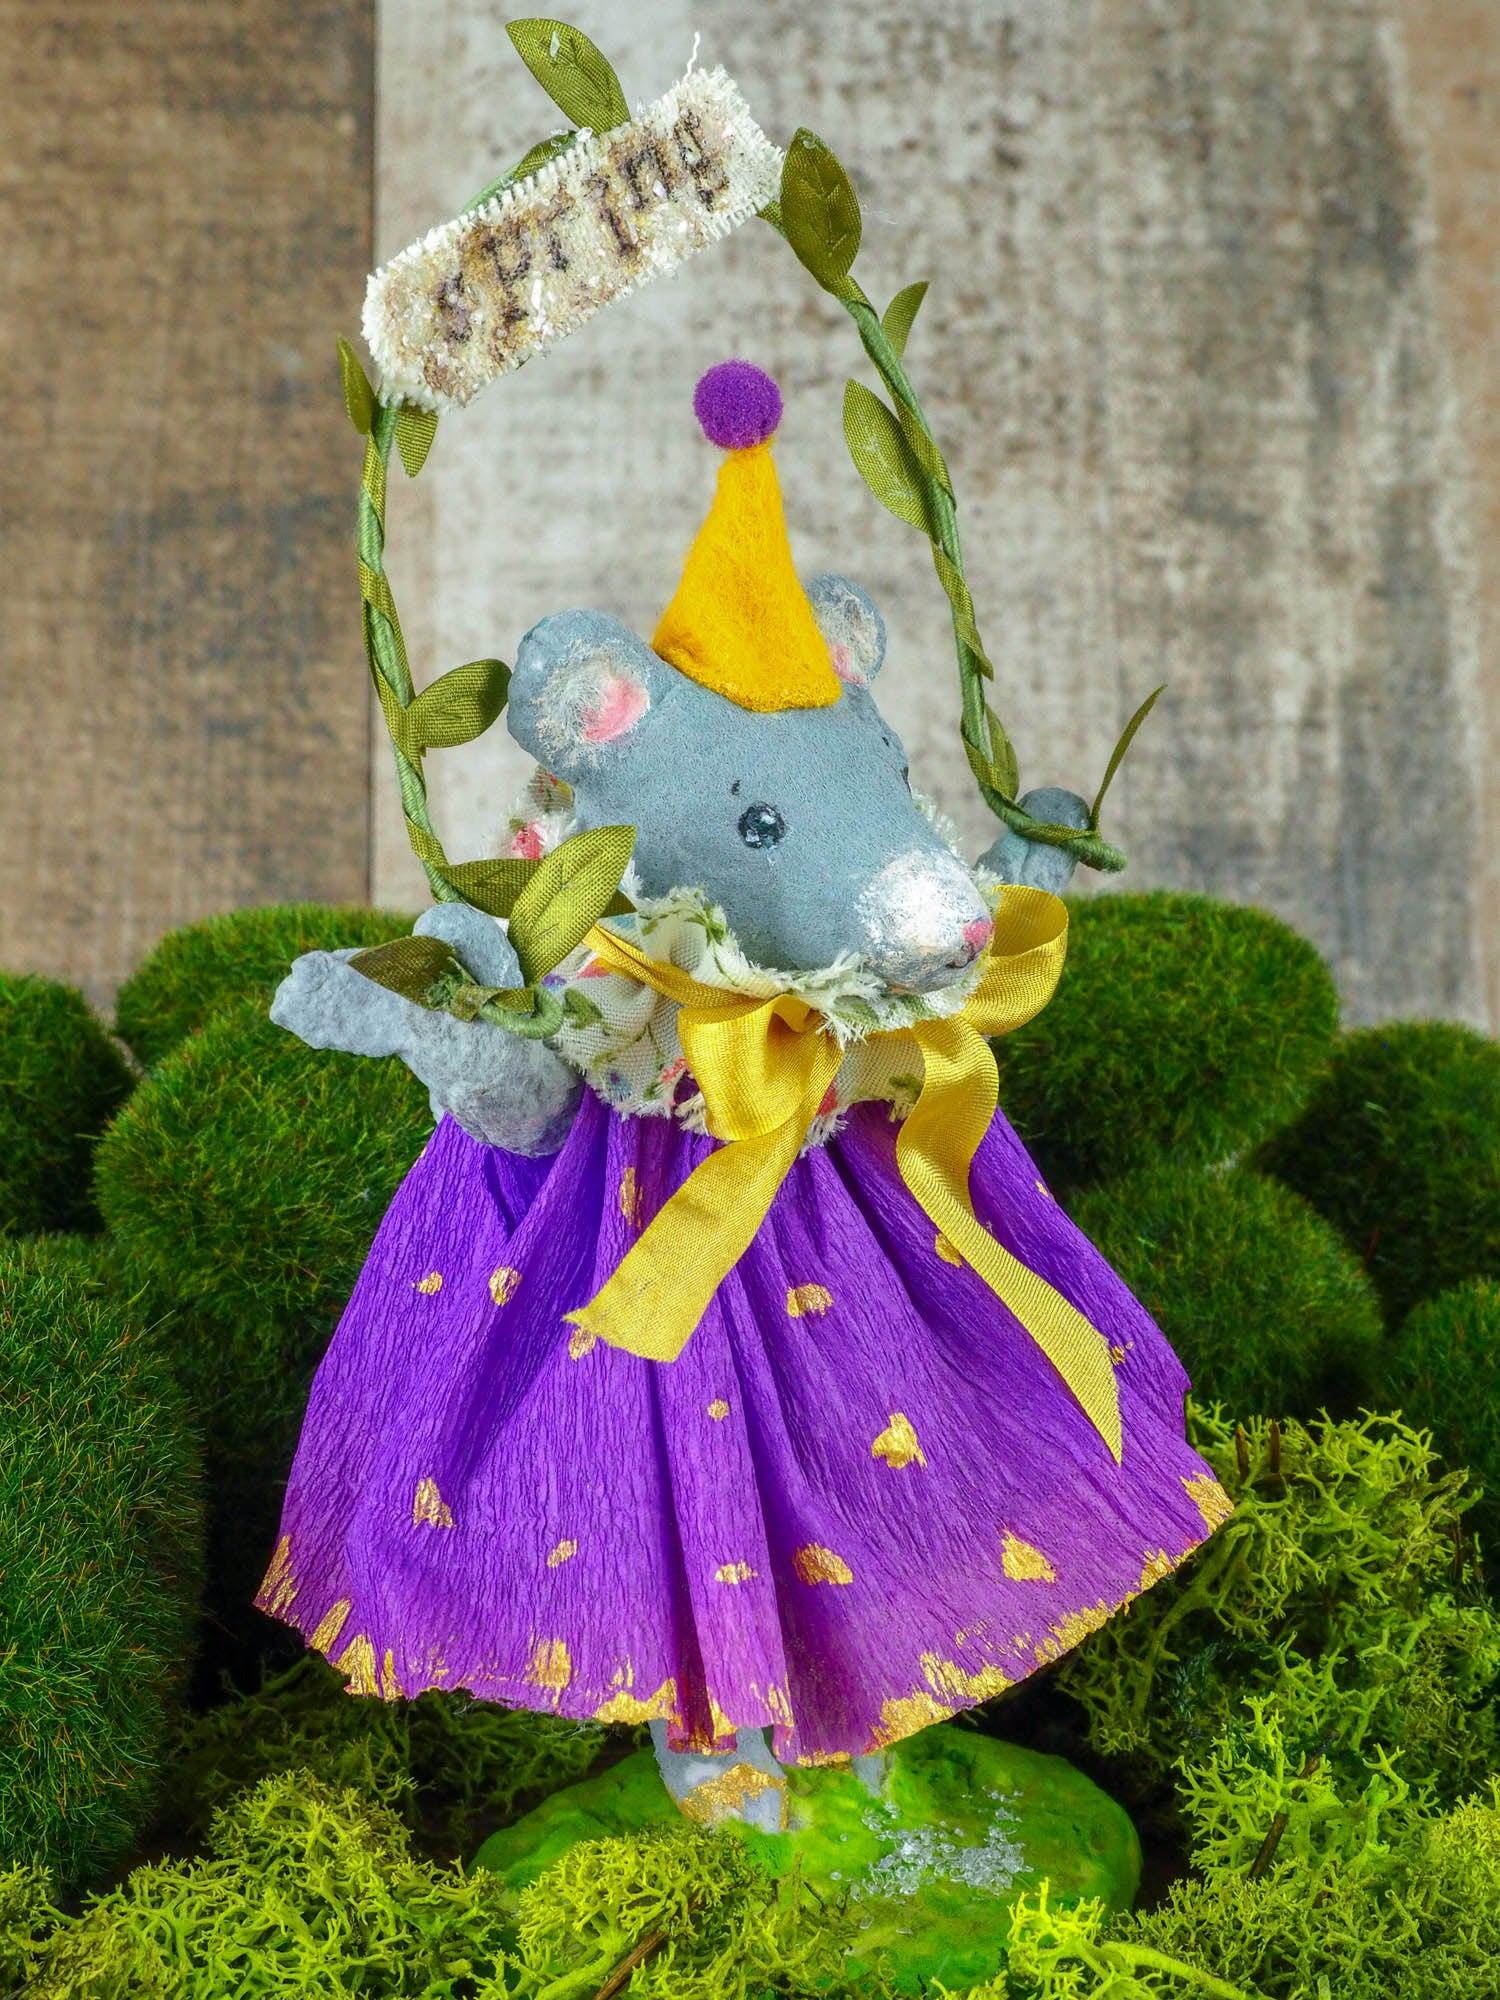 "Spring always inspires Danita to make beautiful handmade decorations for when the flowers start to bloom, just like this 6"" spun cotton handmade grey mouse art doll by Danita, hand painted and dressed in a hand painted polka dot paper skirt."